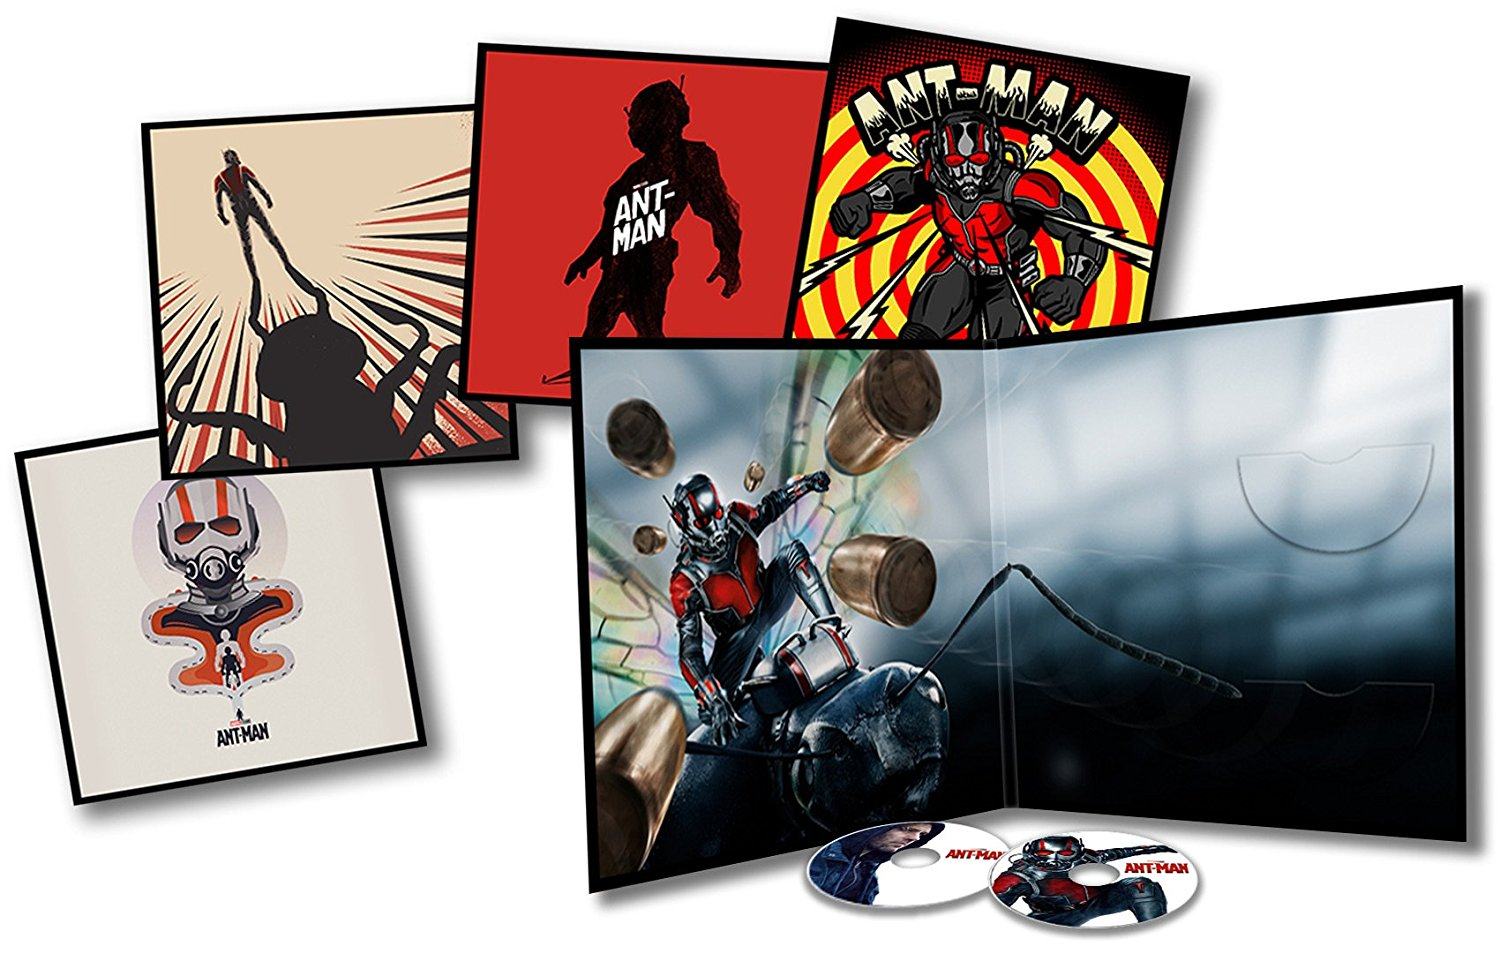 Ant-Man Big Sleeve Blu-ray contents